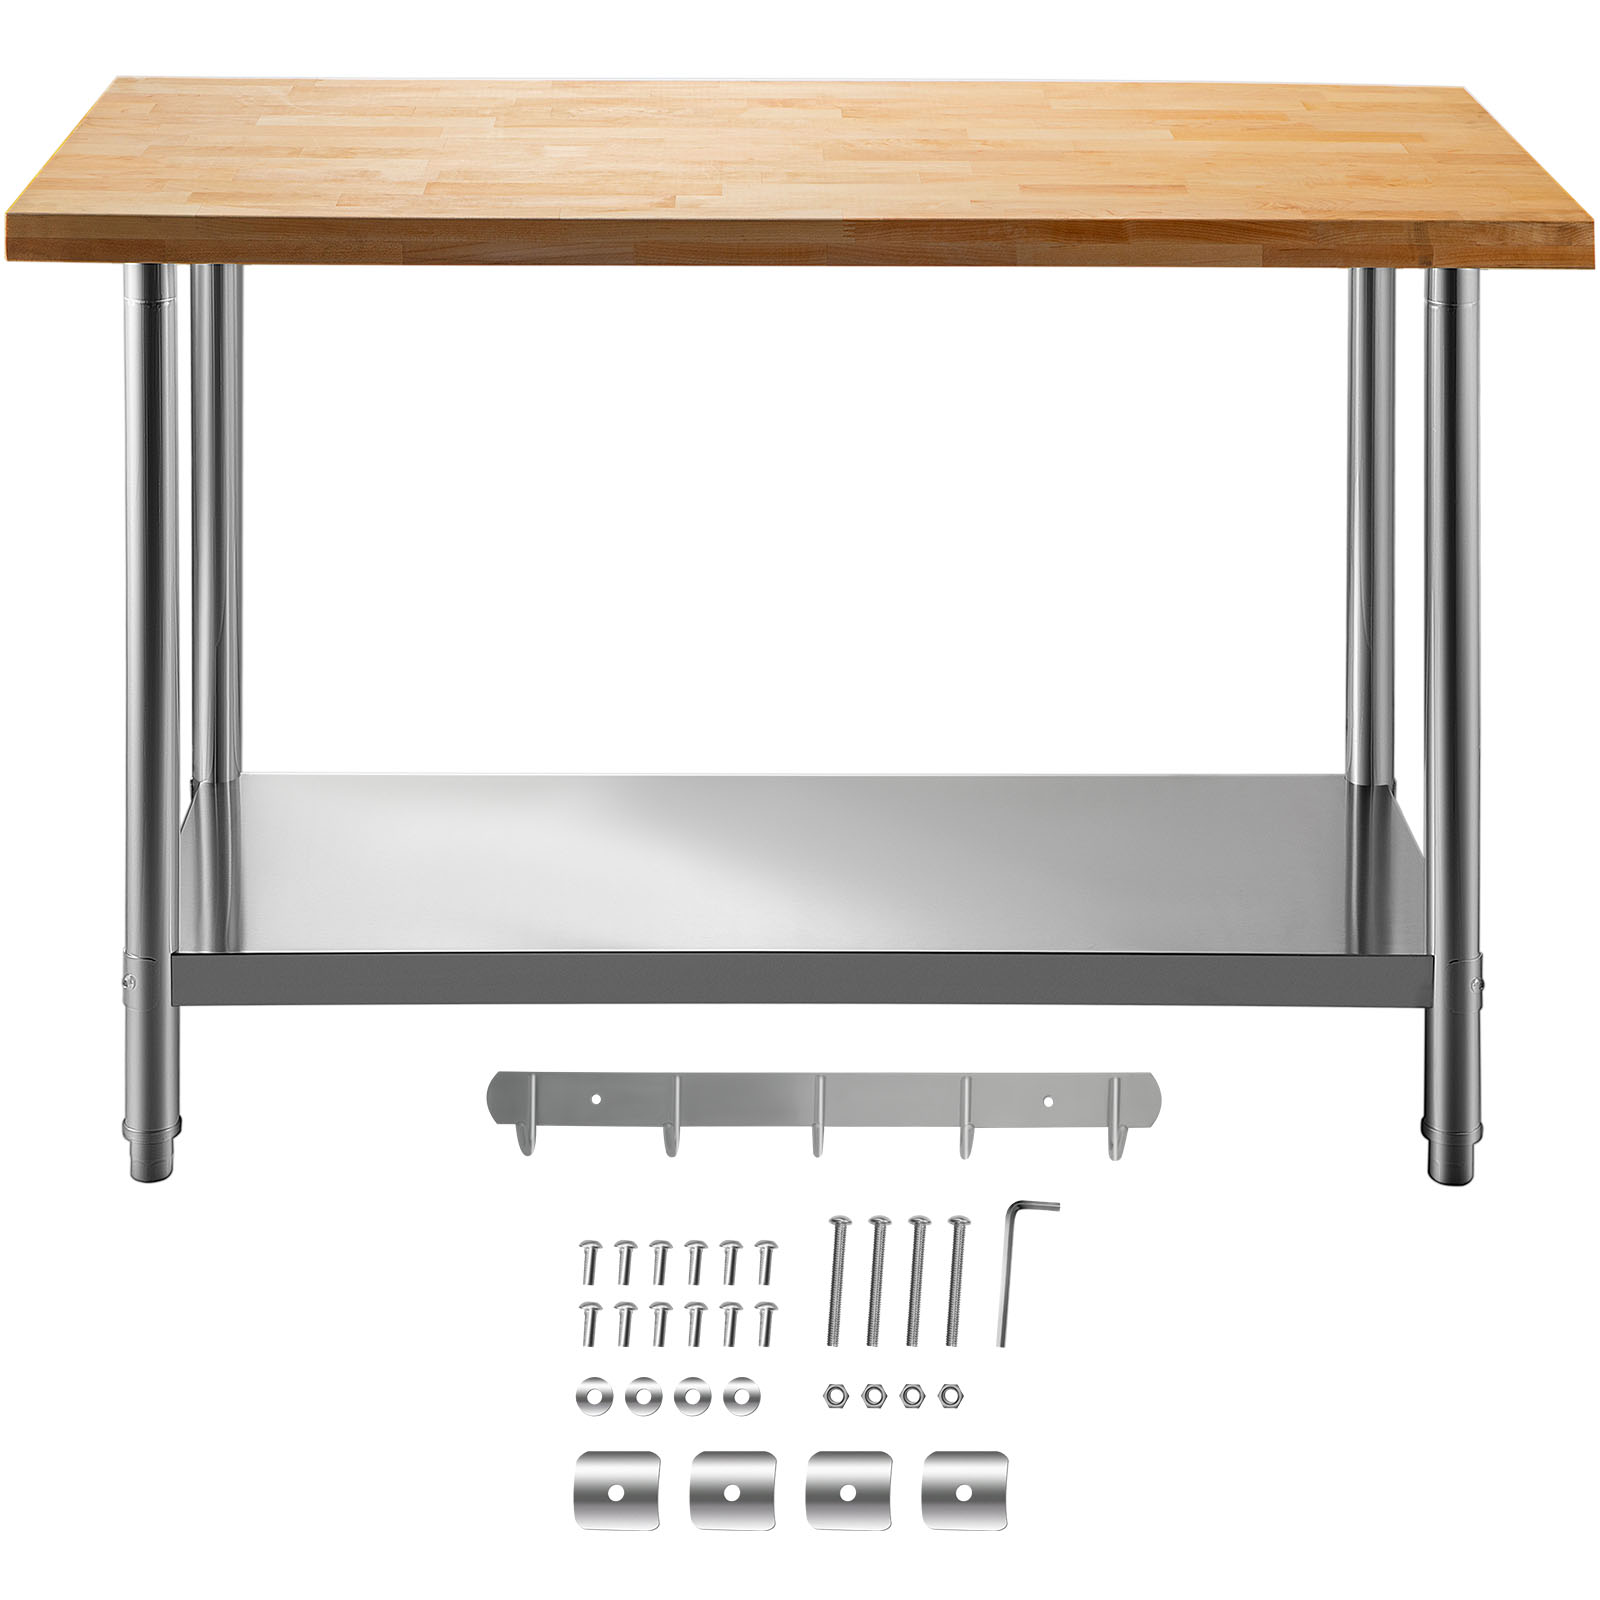 Details about  /VEVOR Commercial Stainless Steel Folding Work Prep Tables Open Kitchen 48x24 In